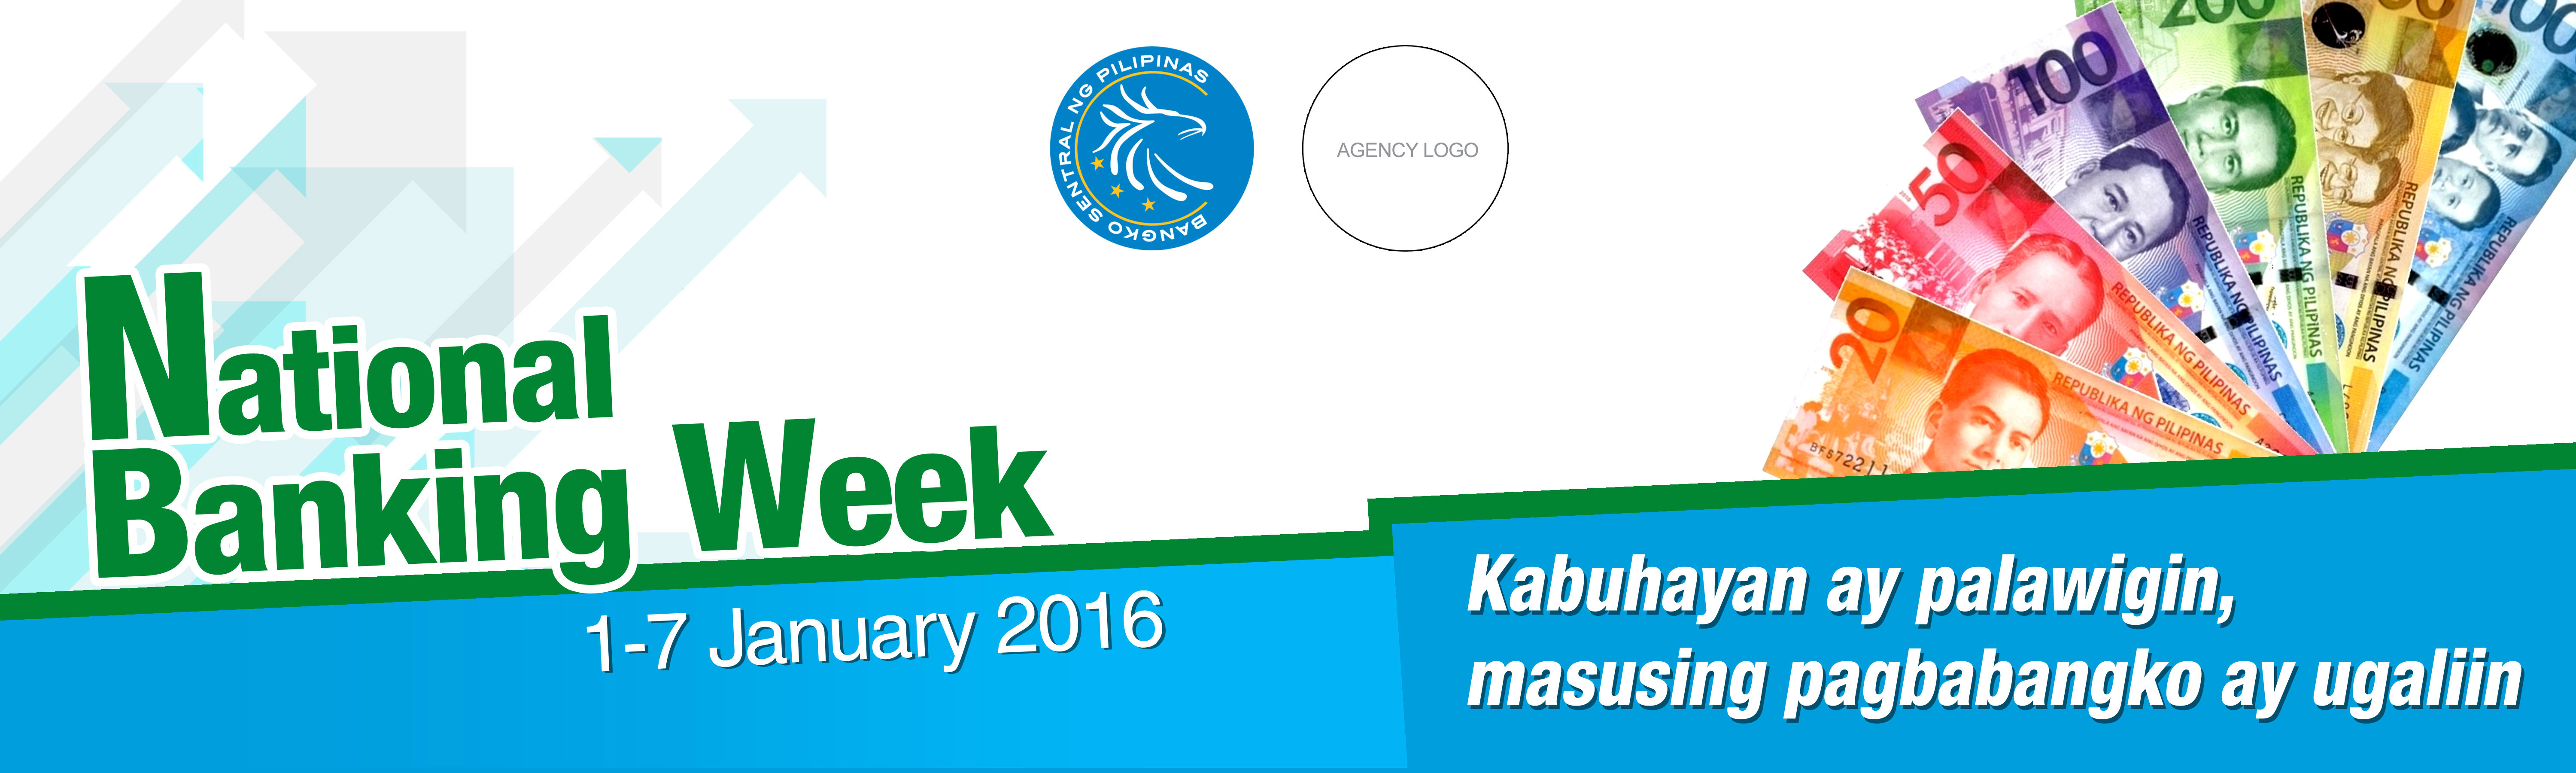 national-banking-week-2015